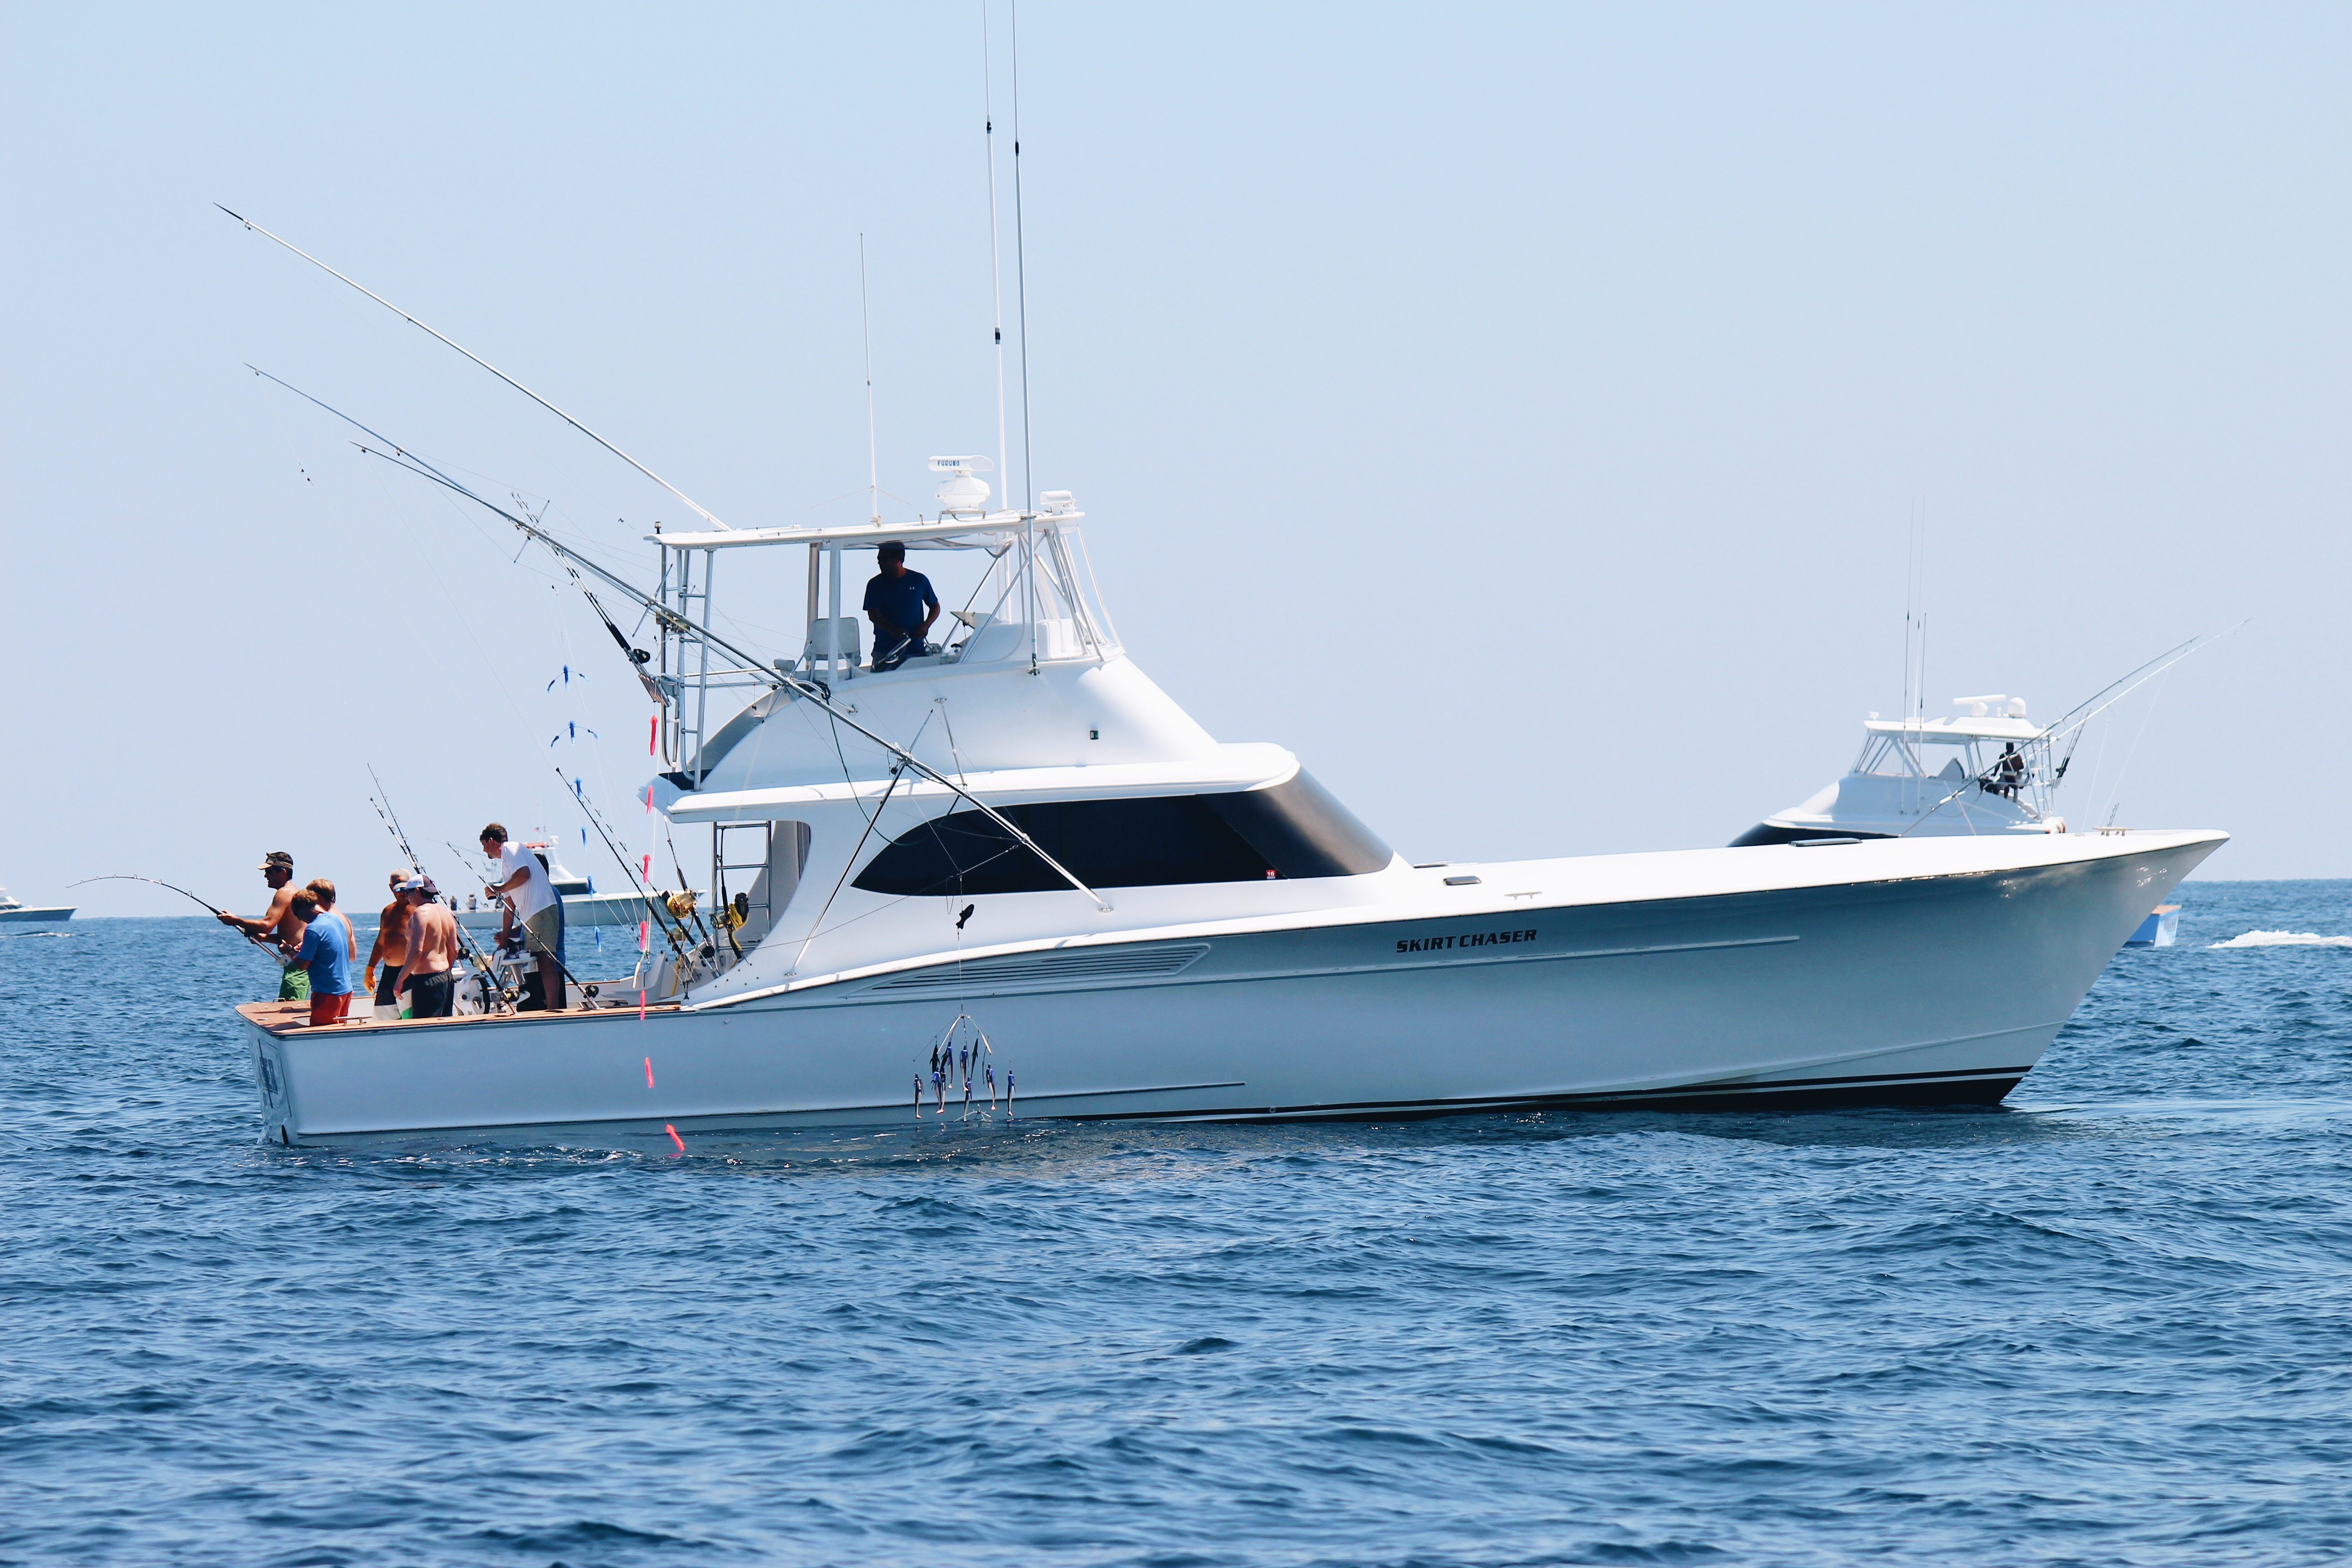 Skirt chaser sportfishing oregon inlet nc outer banks obx for Oregon inlet fishing charters